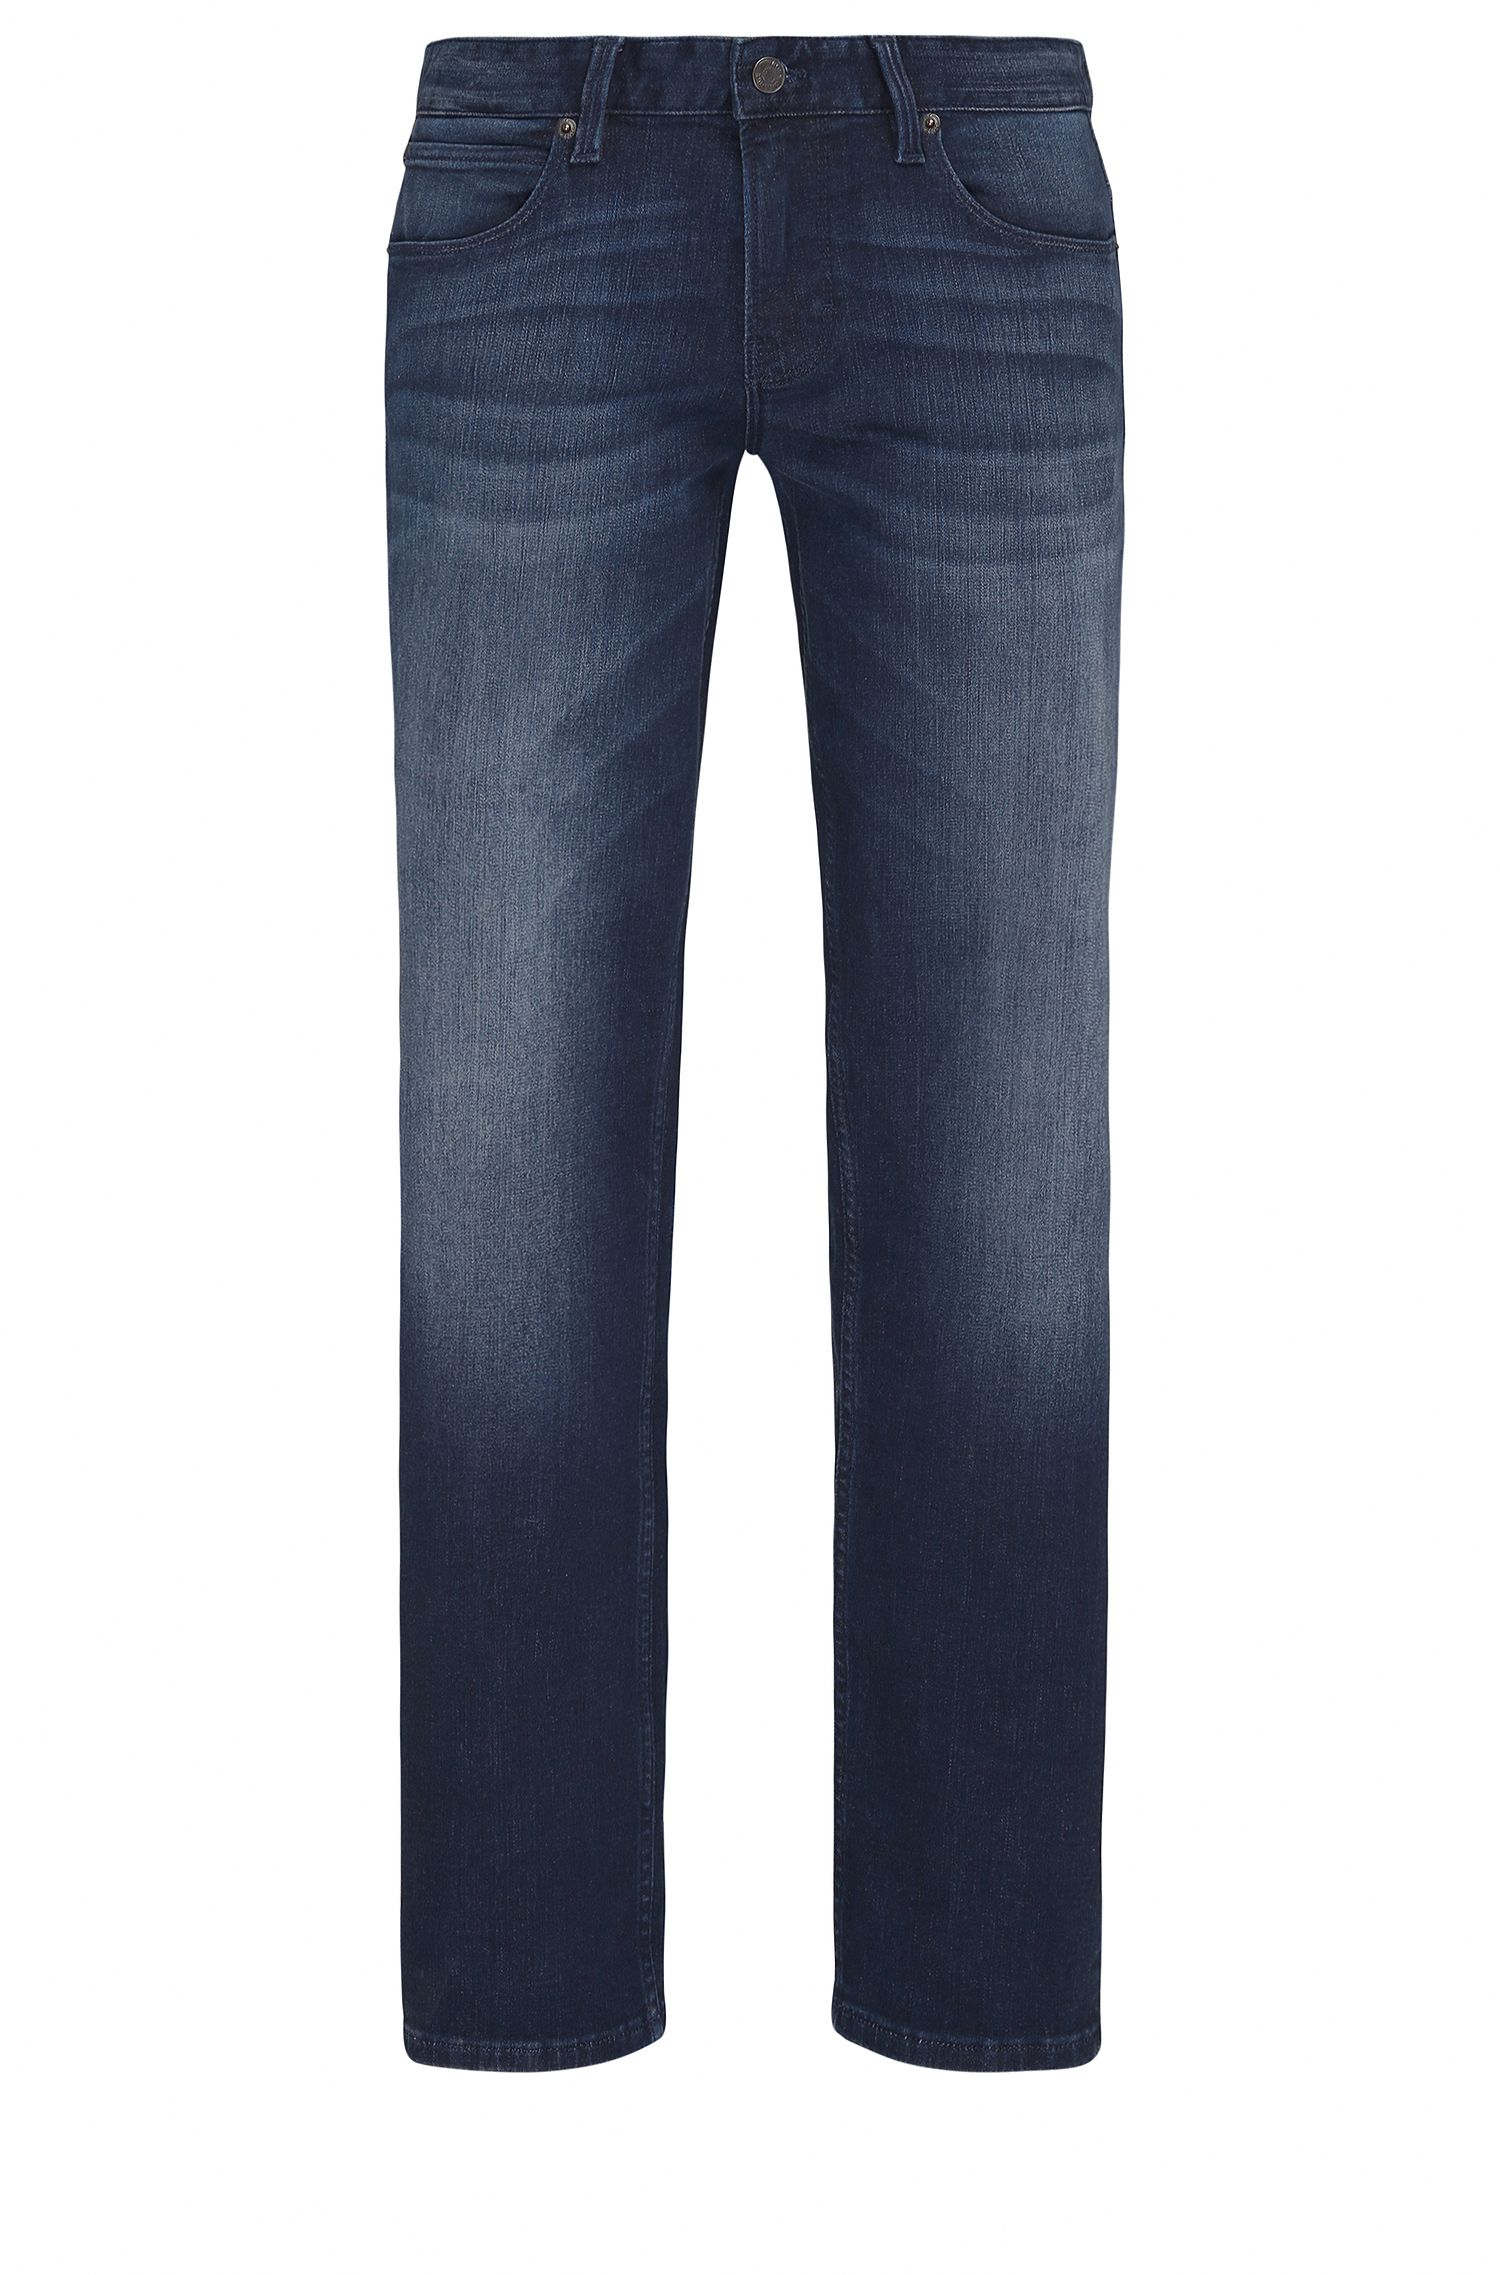 Jeans Slim Fit en denim super stretch